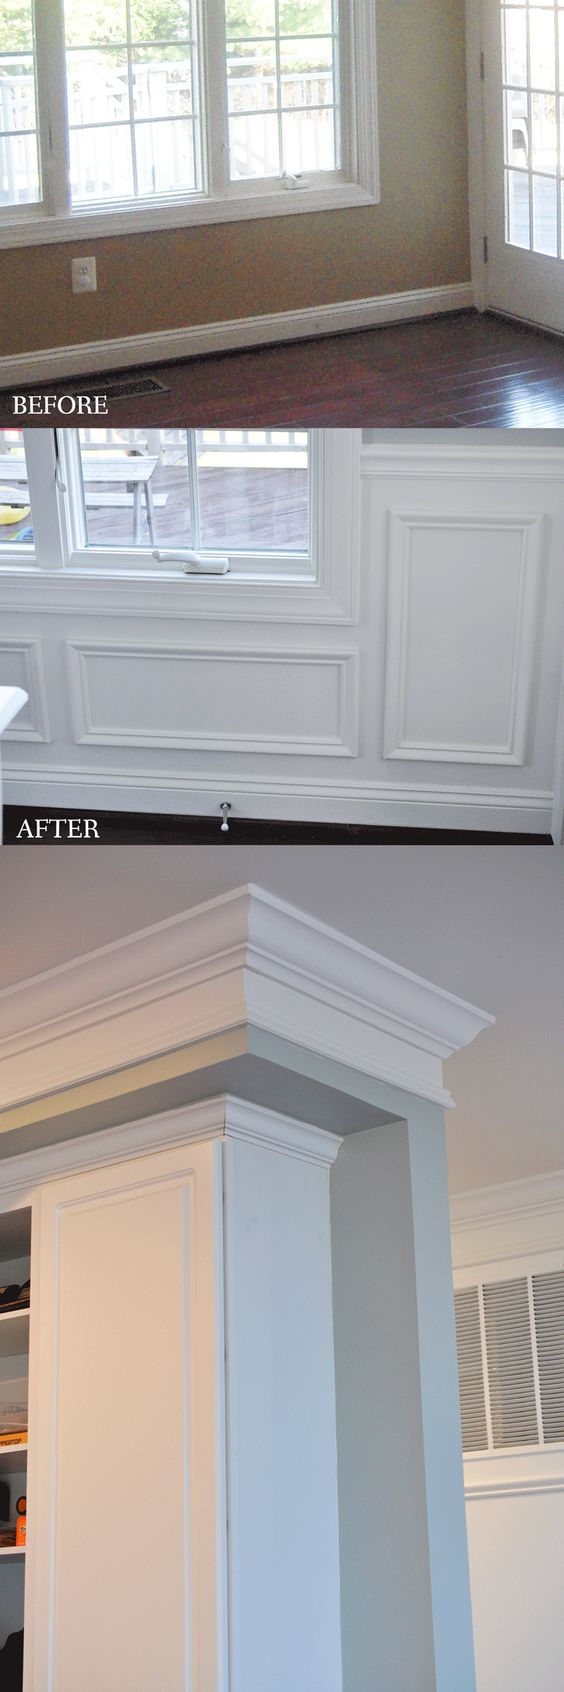 Pictures picture frame wainscoting and pantry on pinterest - Wainscoting kitchen cabinets ...